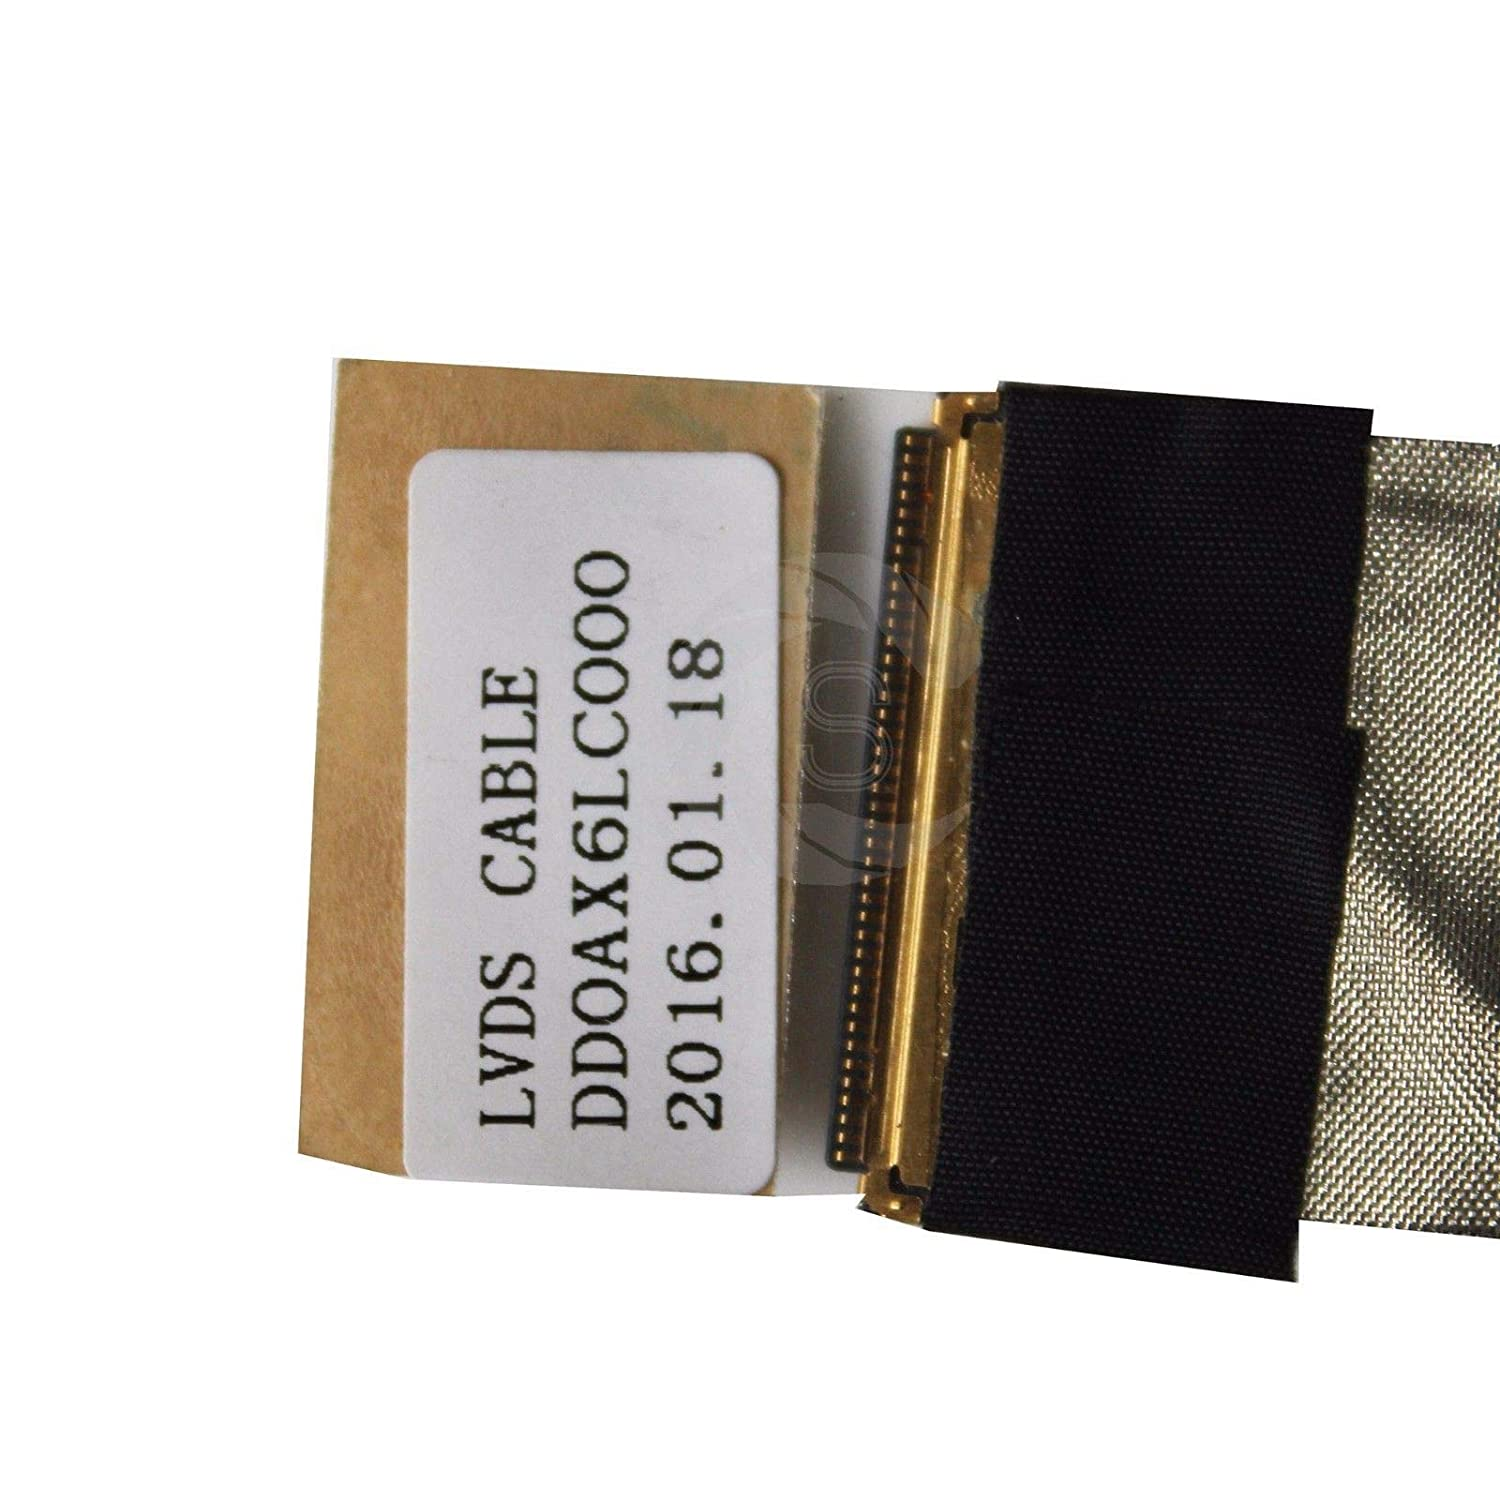 LCD LED LVDS Video Screen Cable For HP Pavilion 17-e143nr 17-e181nr 17-e175nr